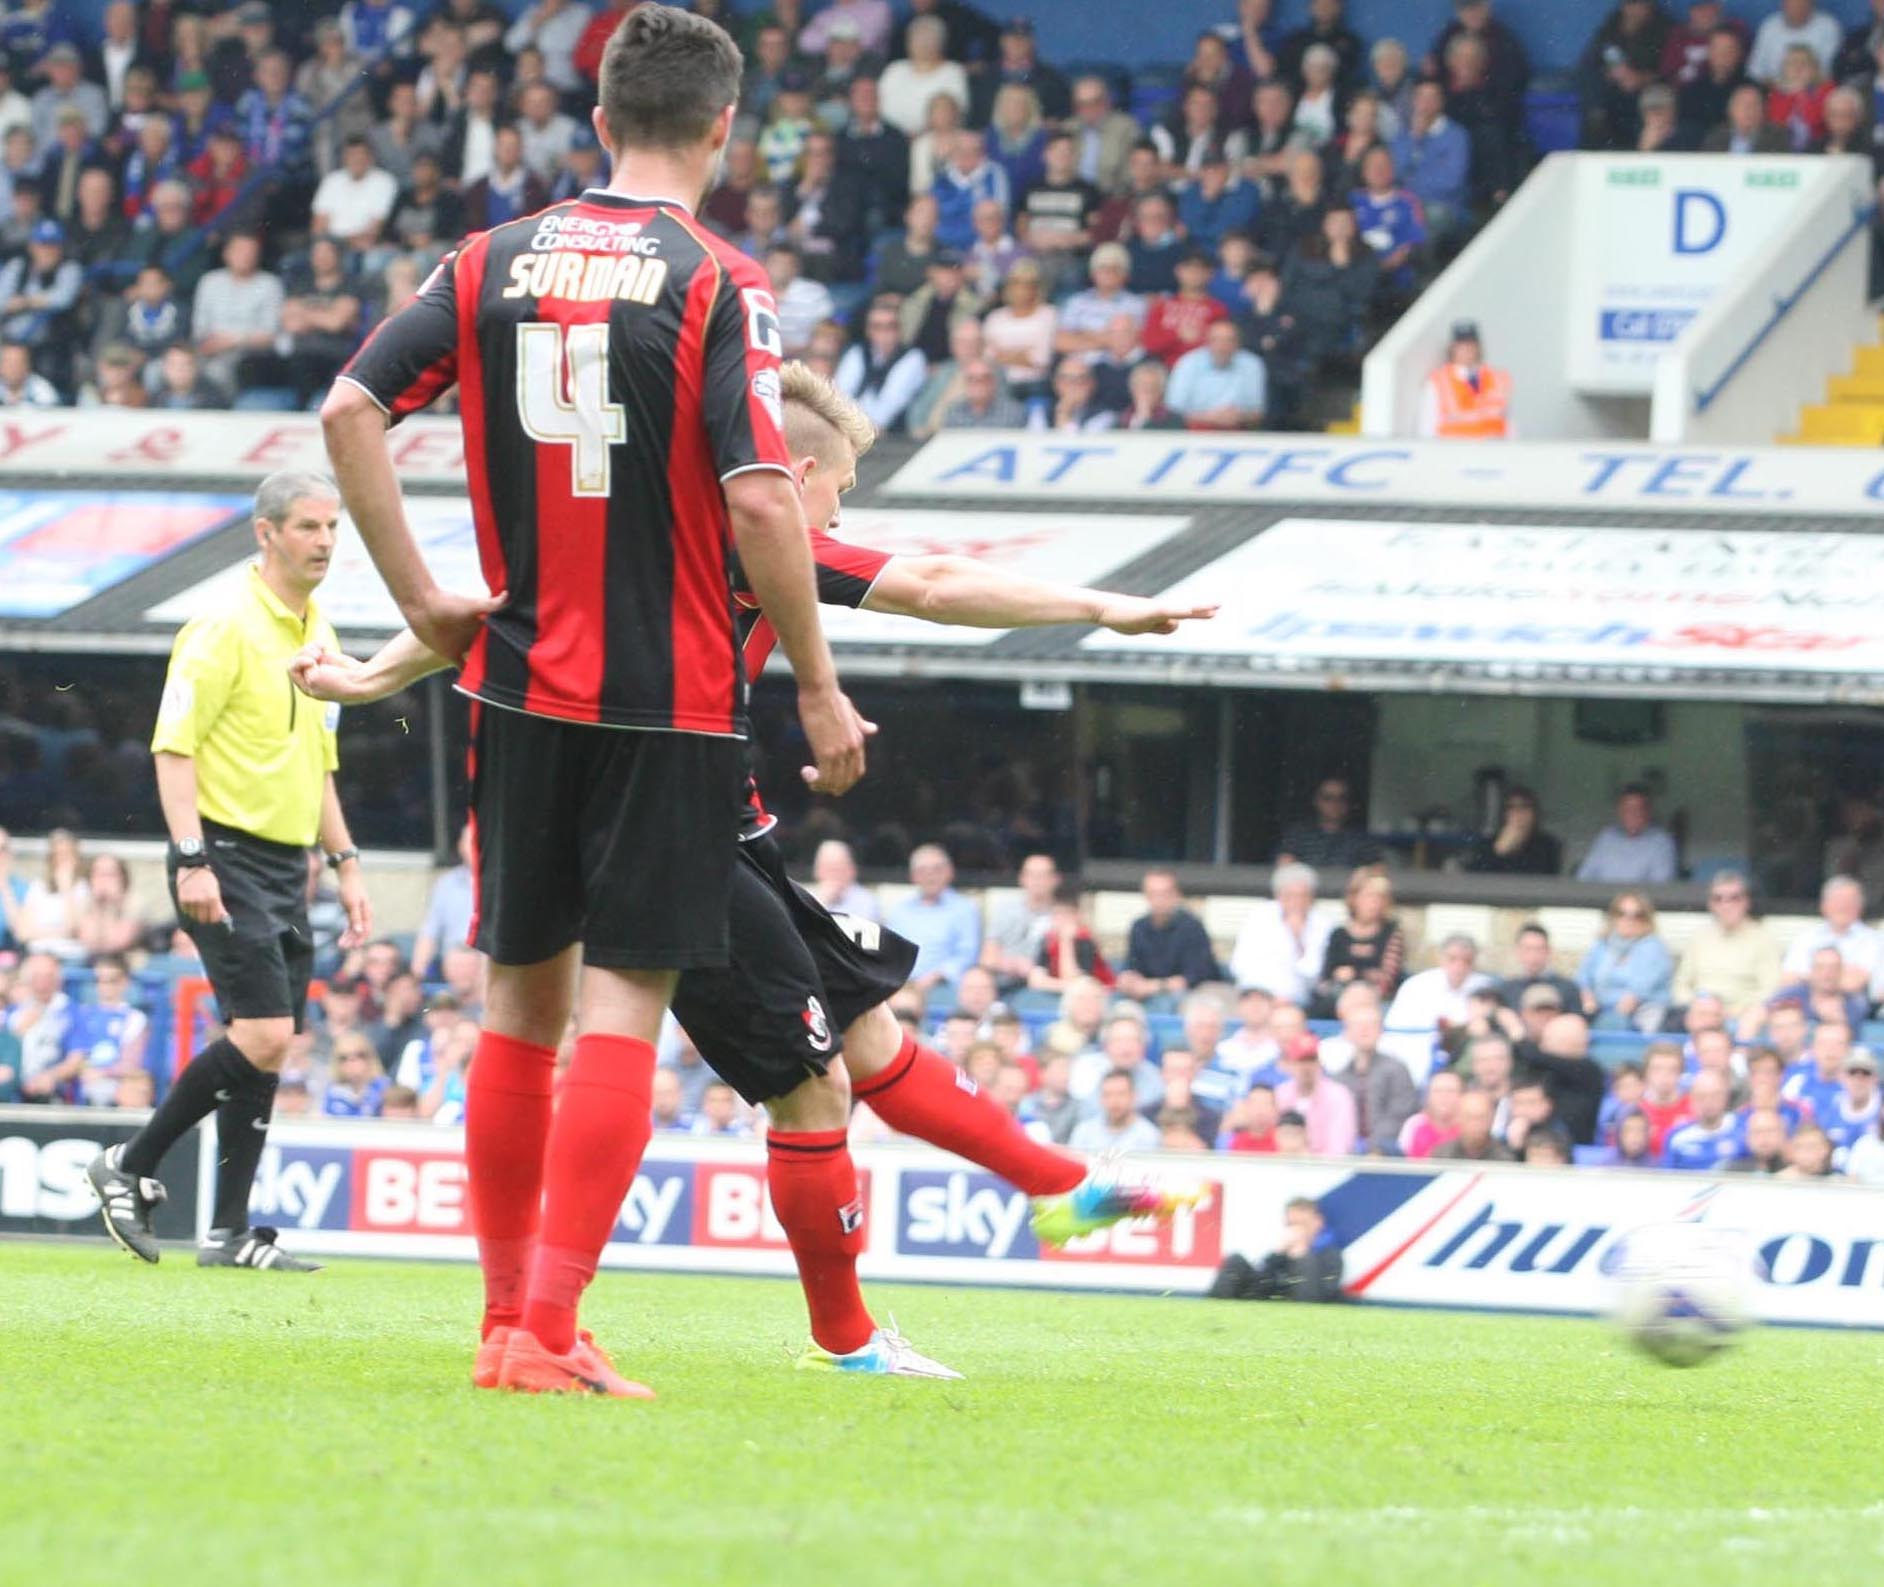 LEVELLER: Matt Ritchie nets Cherries' second goal at Portman Road